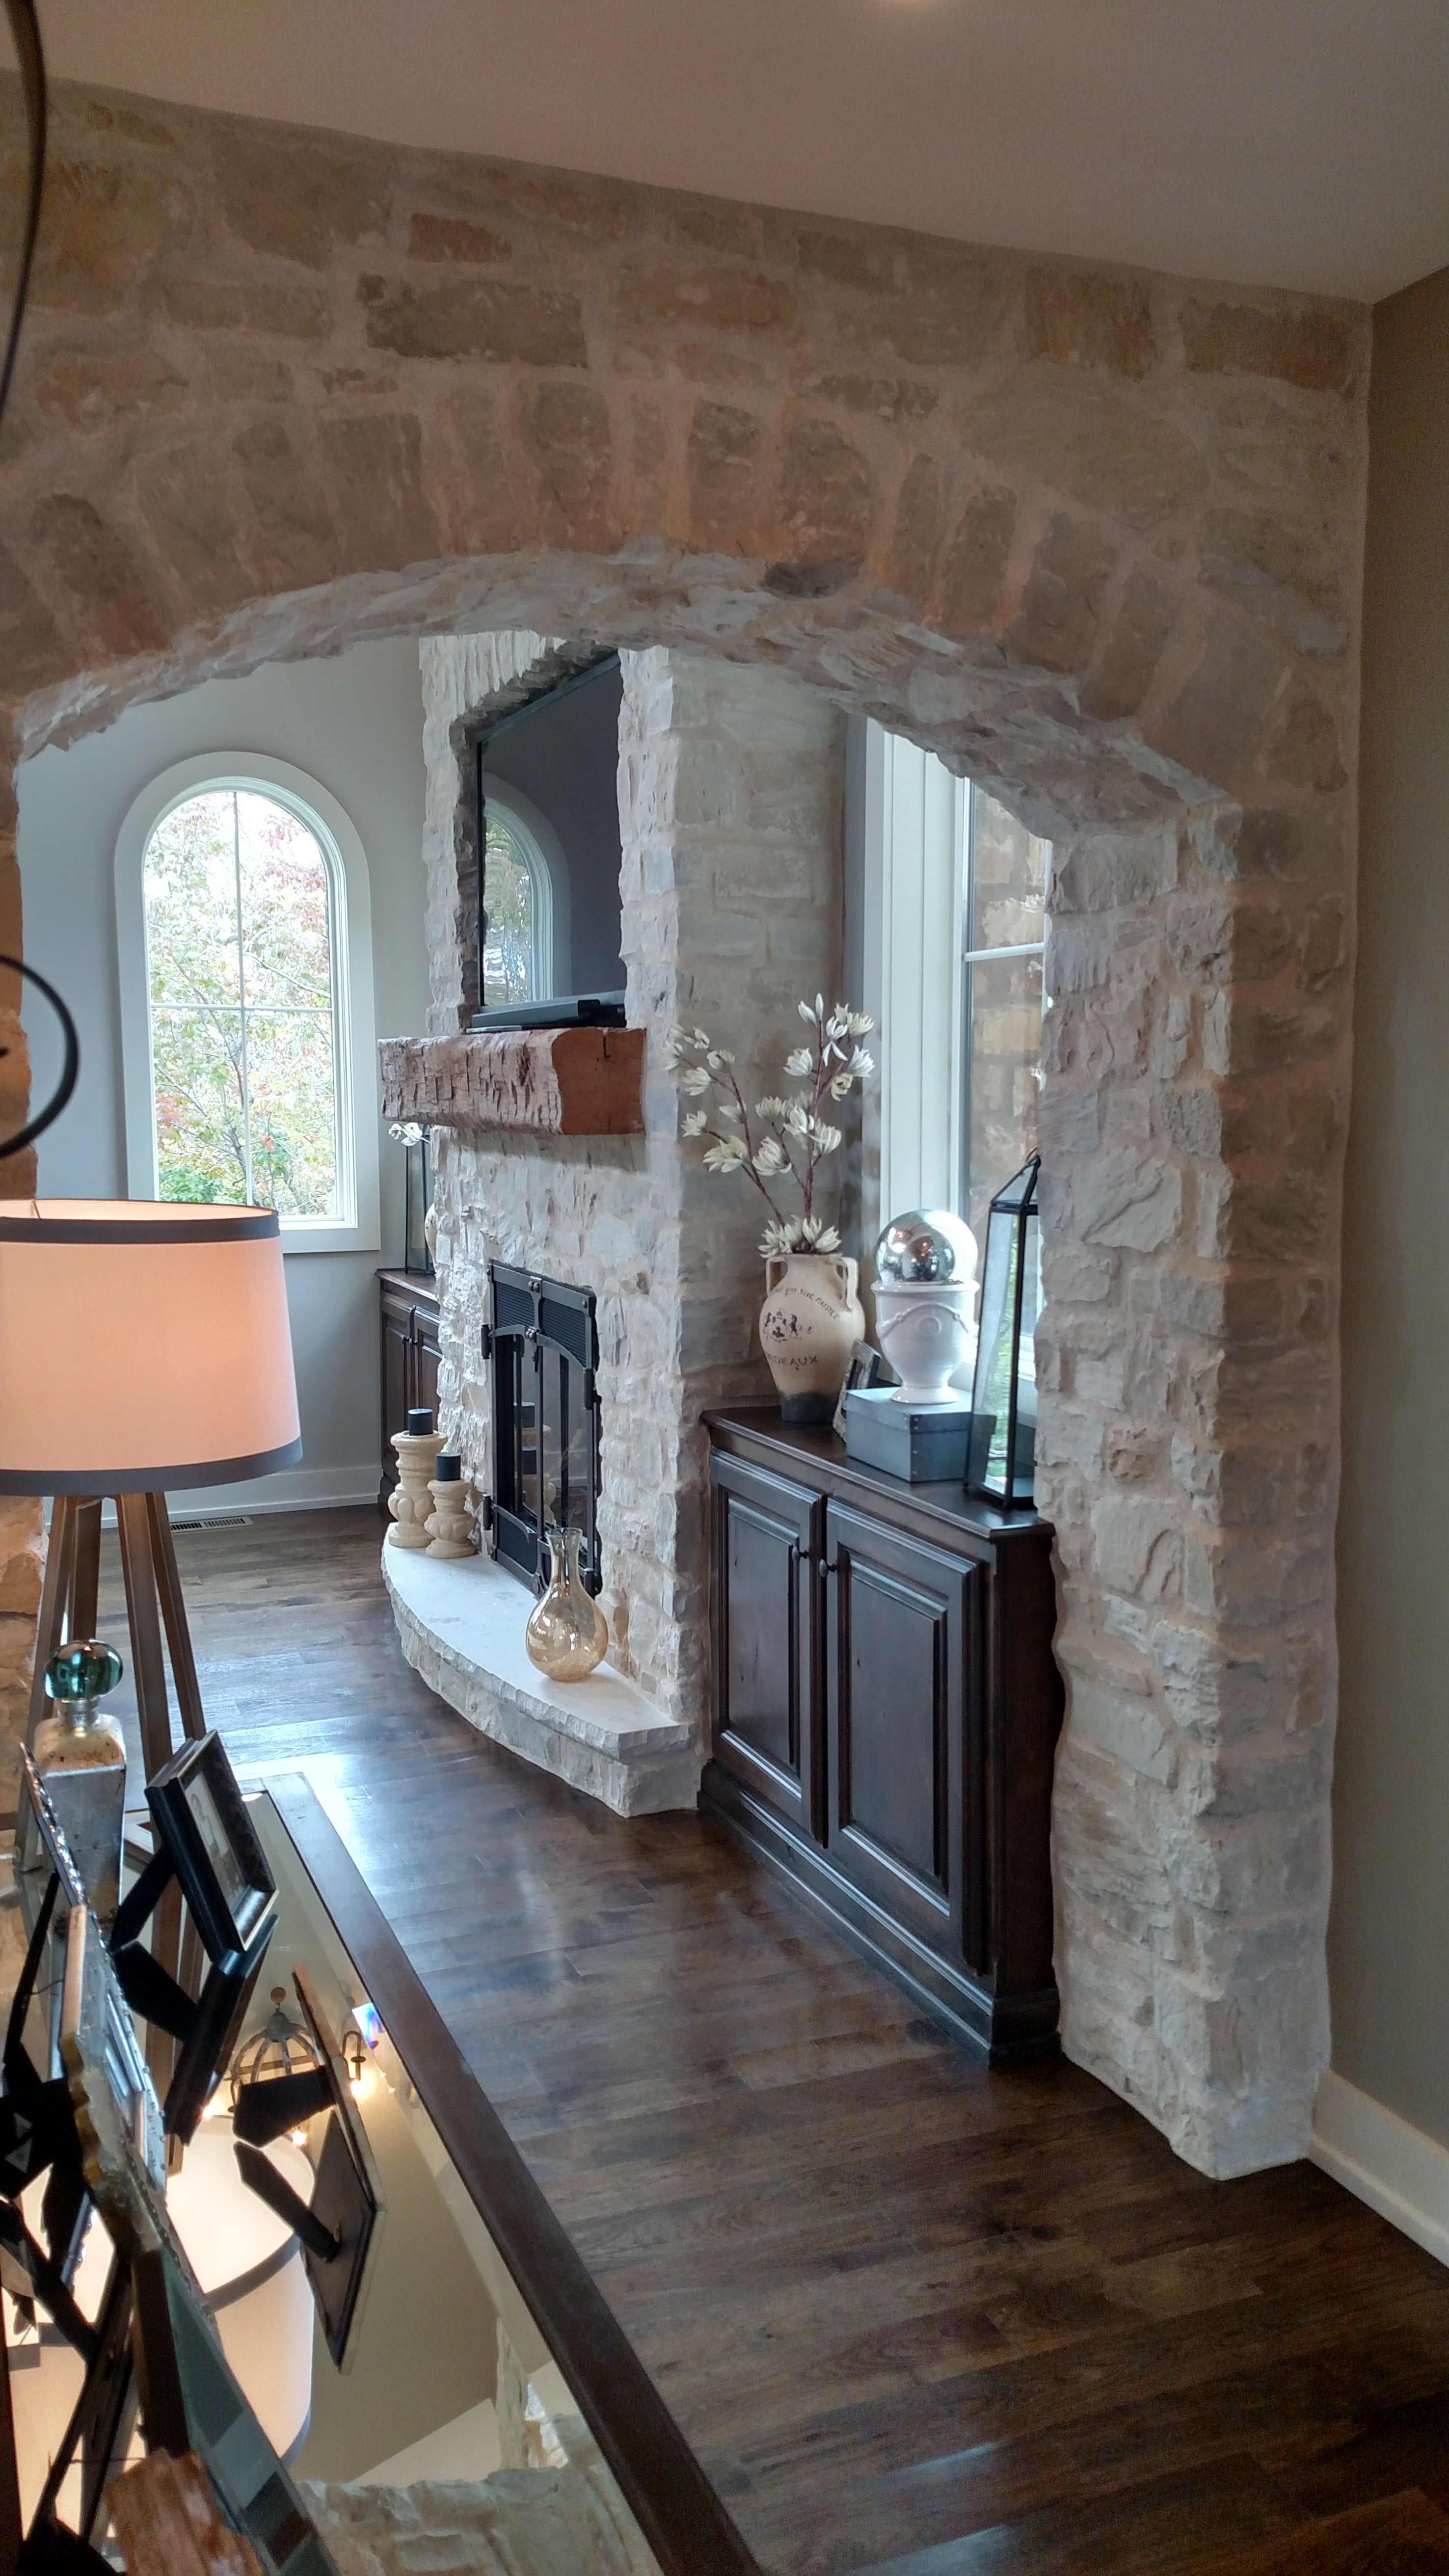 Stone Veneer Fireplace And Archway. Profiles Country Ledge & Tuscan Fieldstone Color Texas